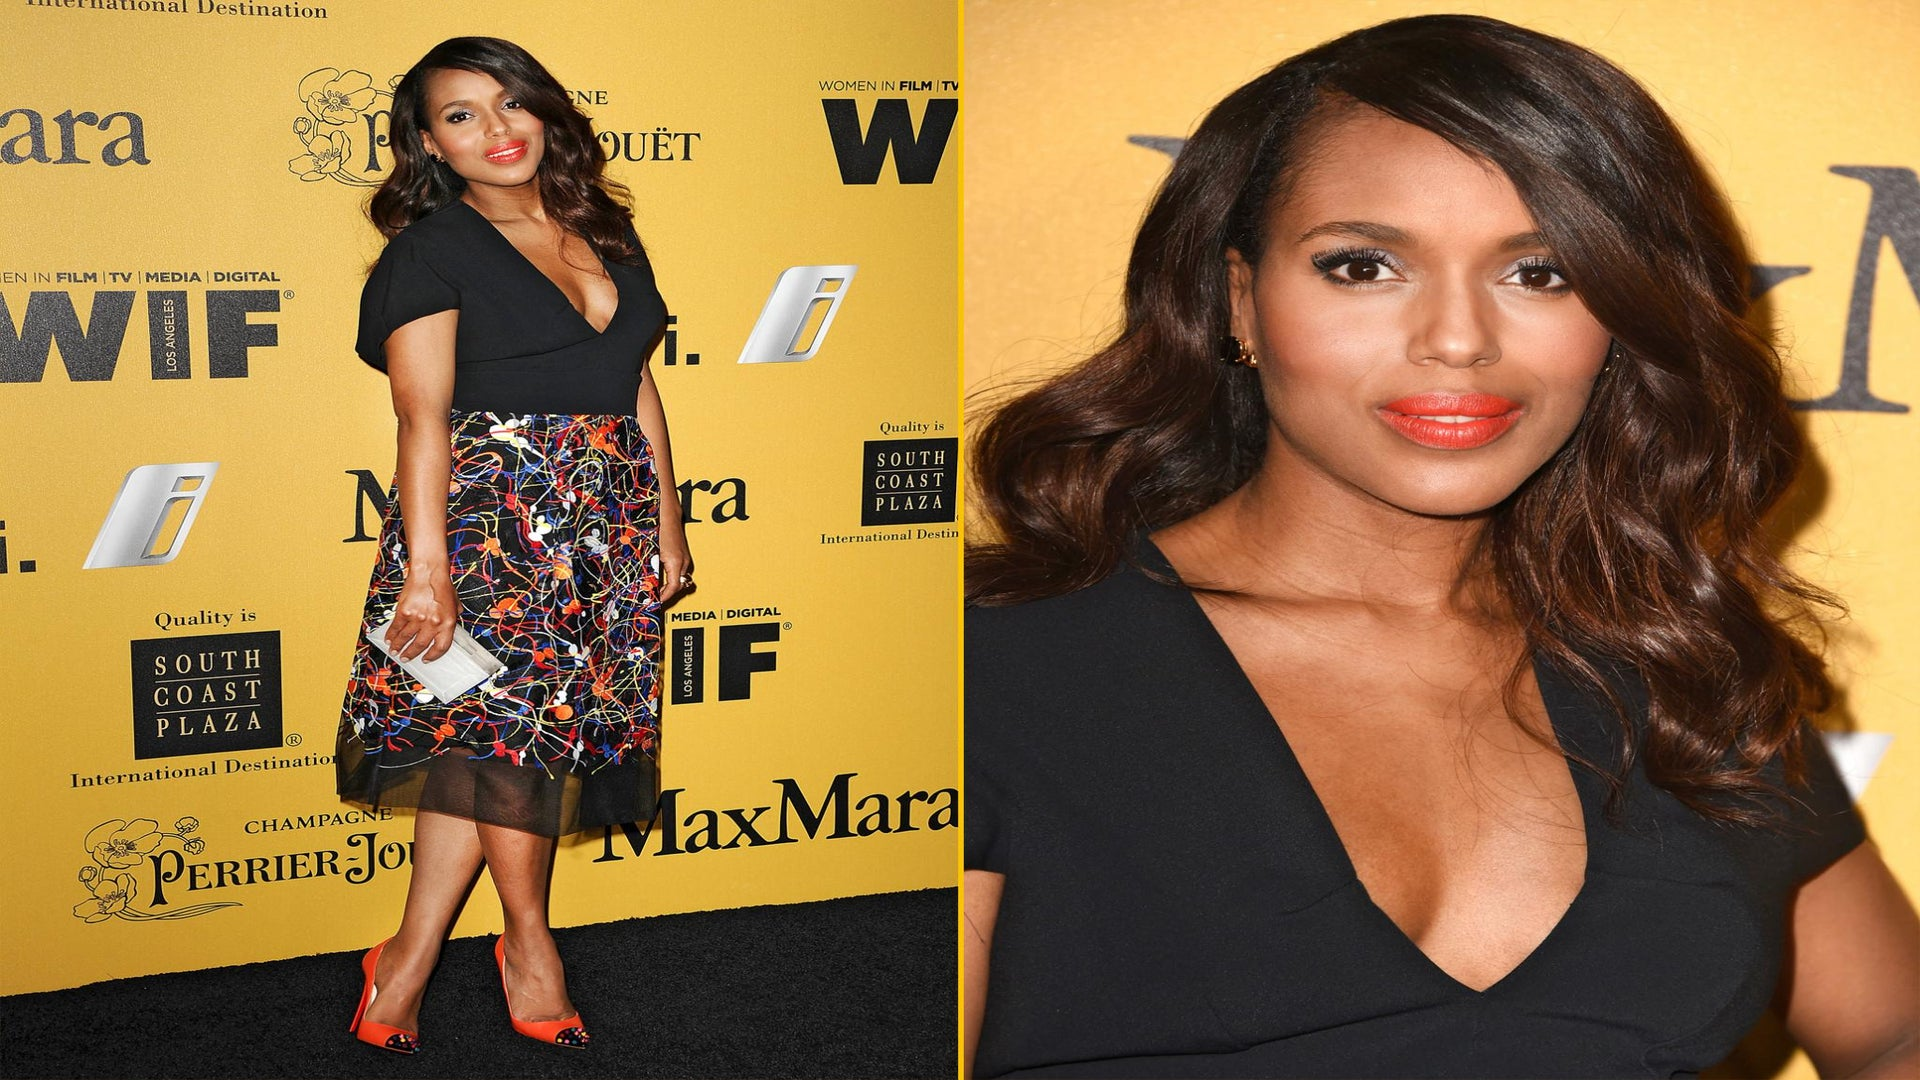 Kerry Washington Partners With The Limited for 'Scandal' Collection